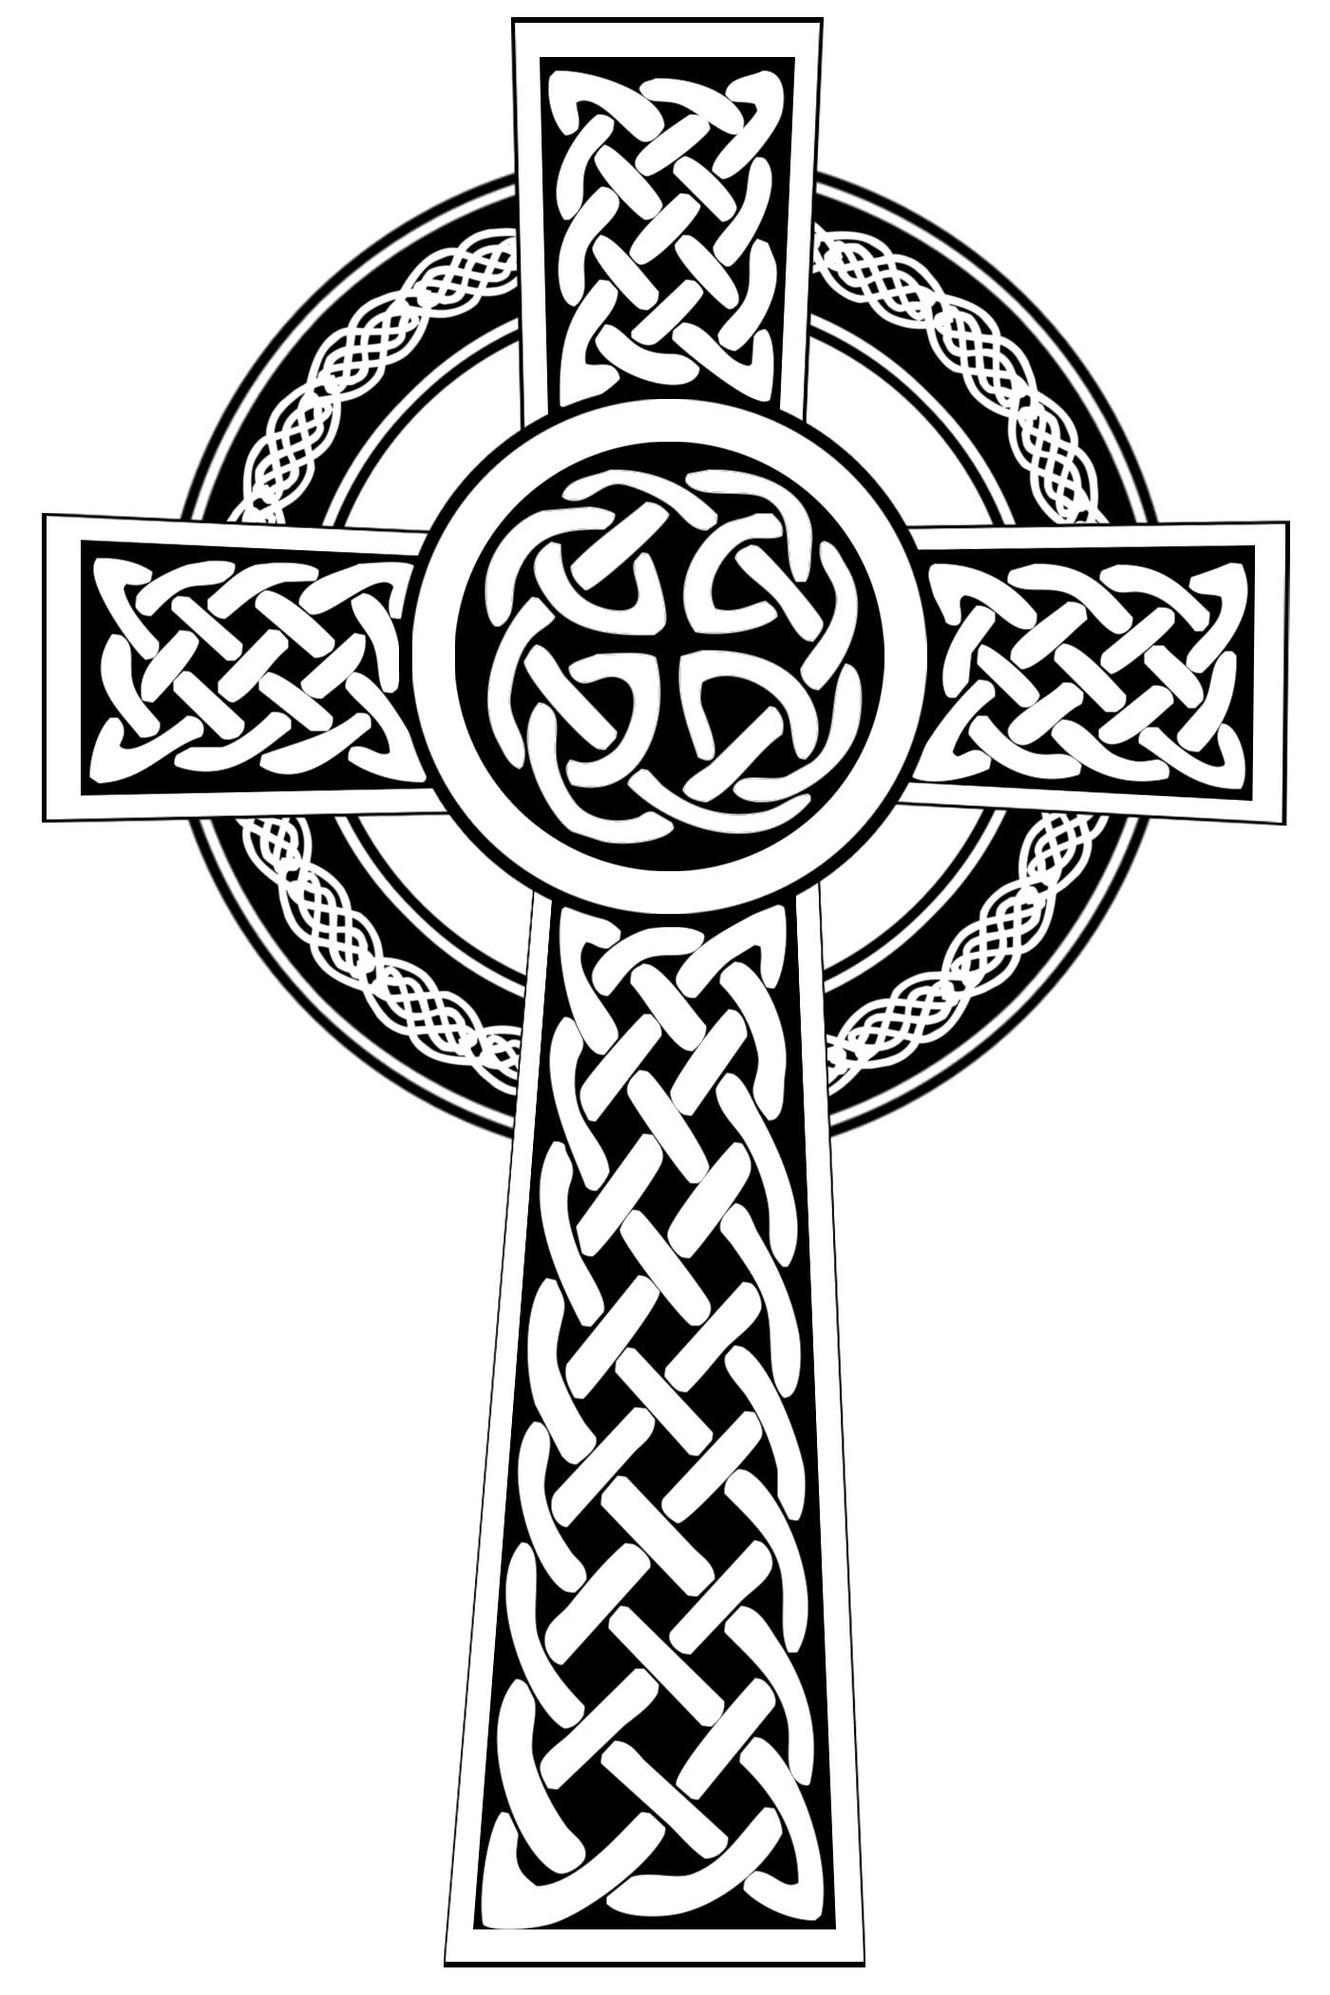 celtic cross line drawing at getdrawings com free for personal use rh getdrawings com celtic cross clip art black and white celtic cross images clipart